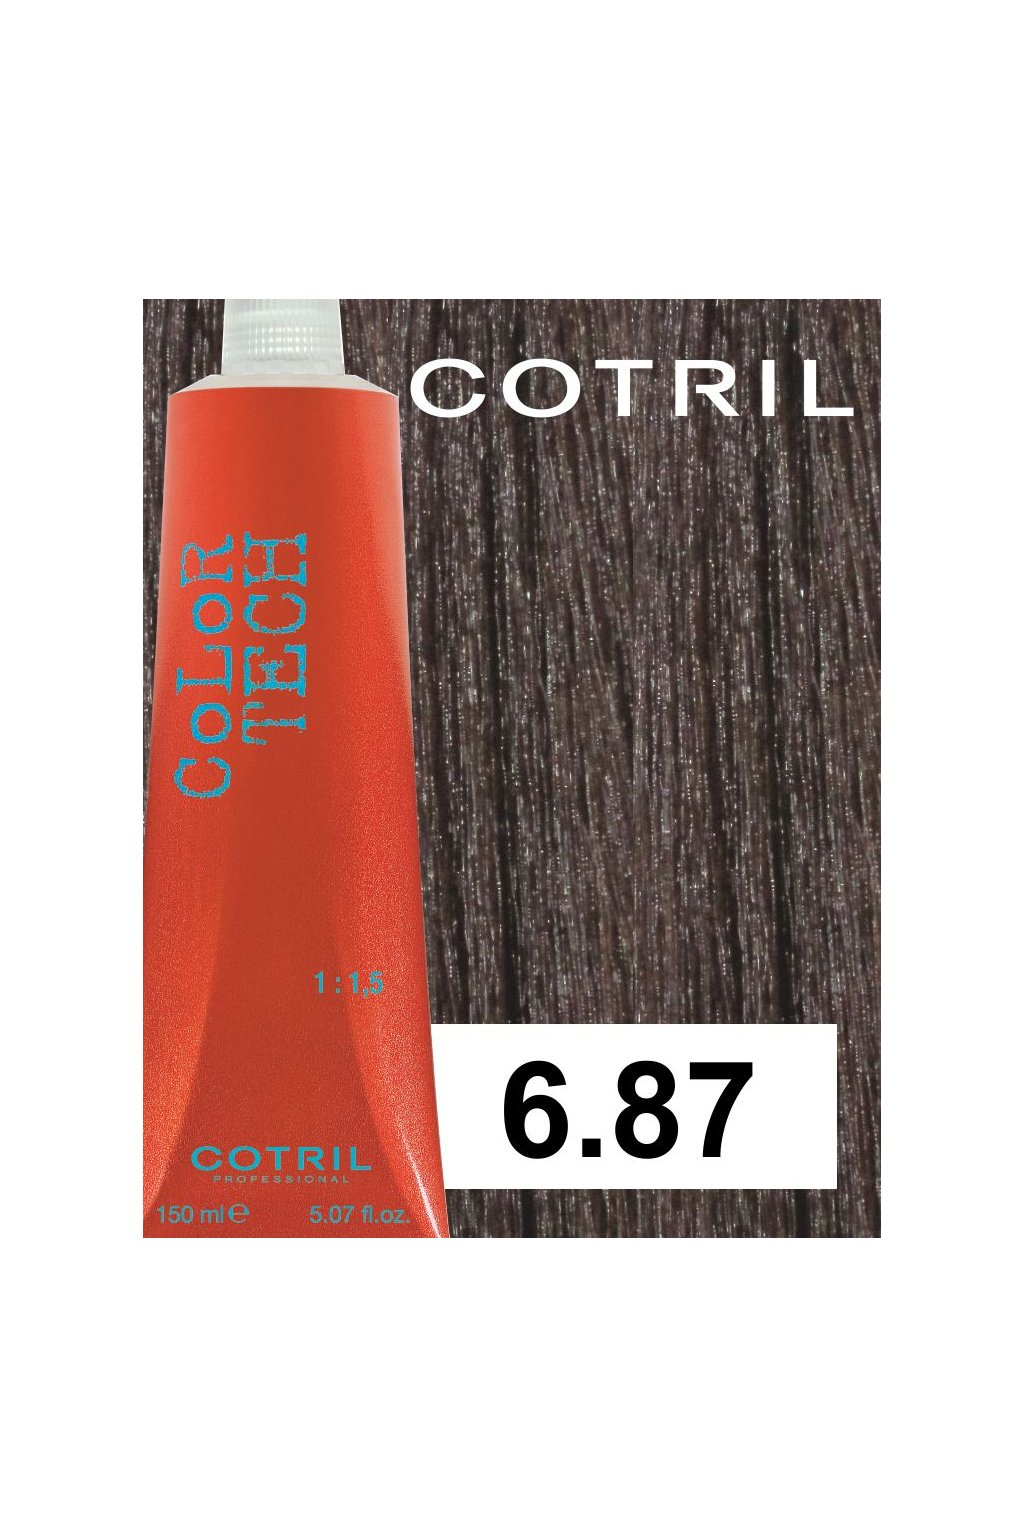 6 87 ct cotril